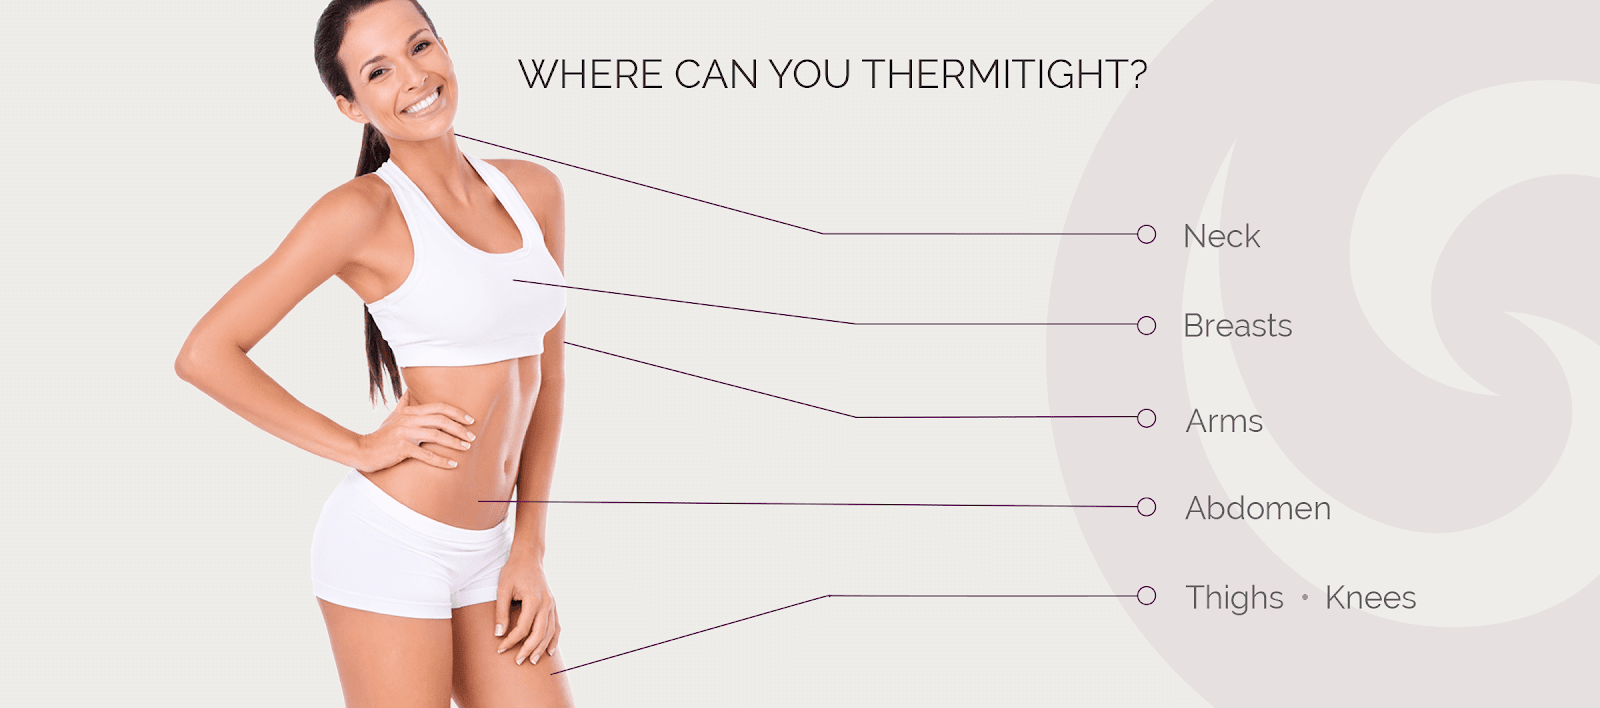 ThermiTight For skin tightening of the body